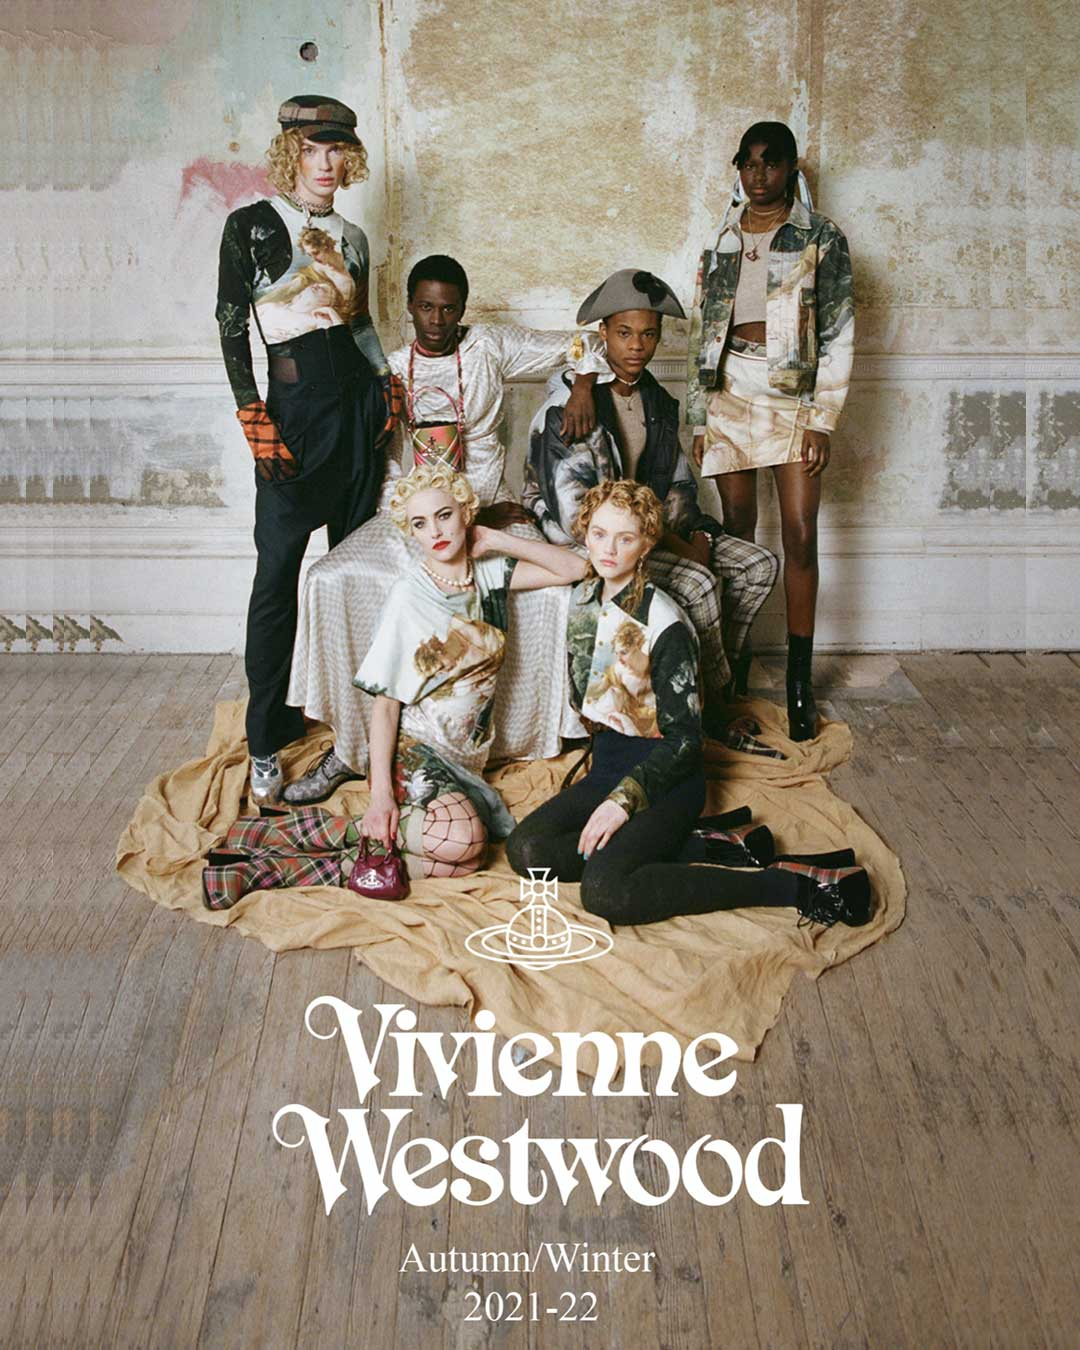 Vivienne Westwood Autumn-Winter 2021-22 - Cover #2. Reserved magazine.